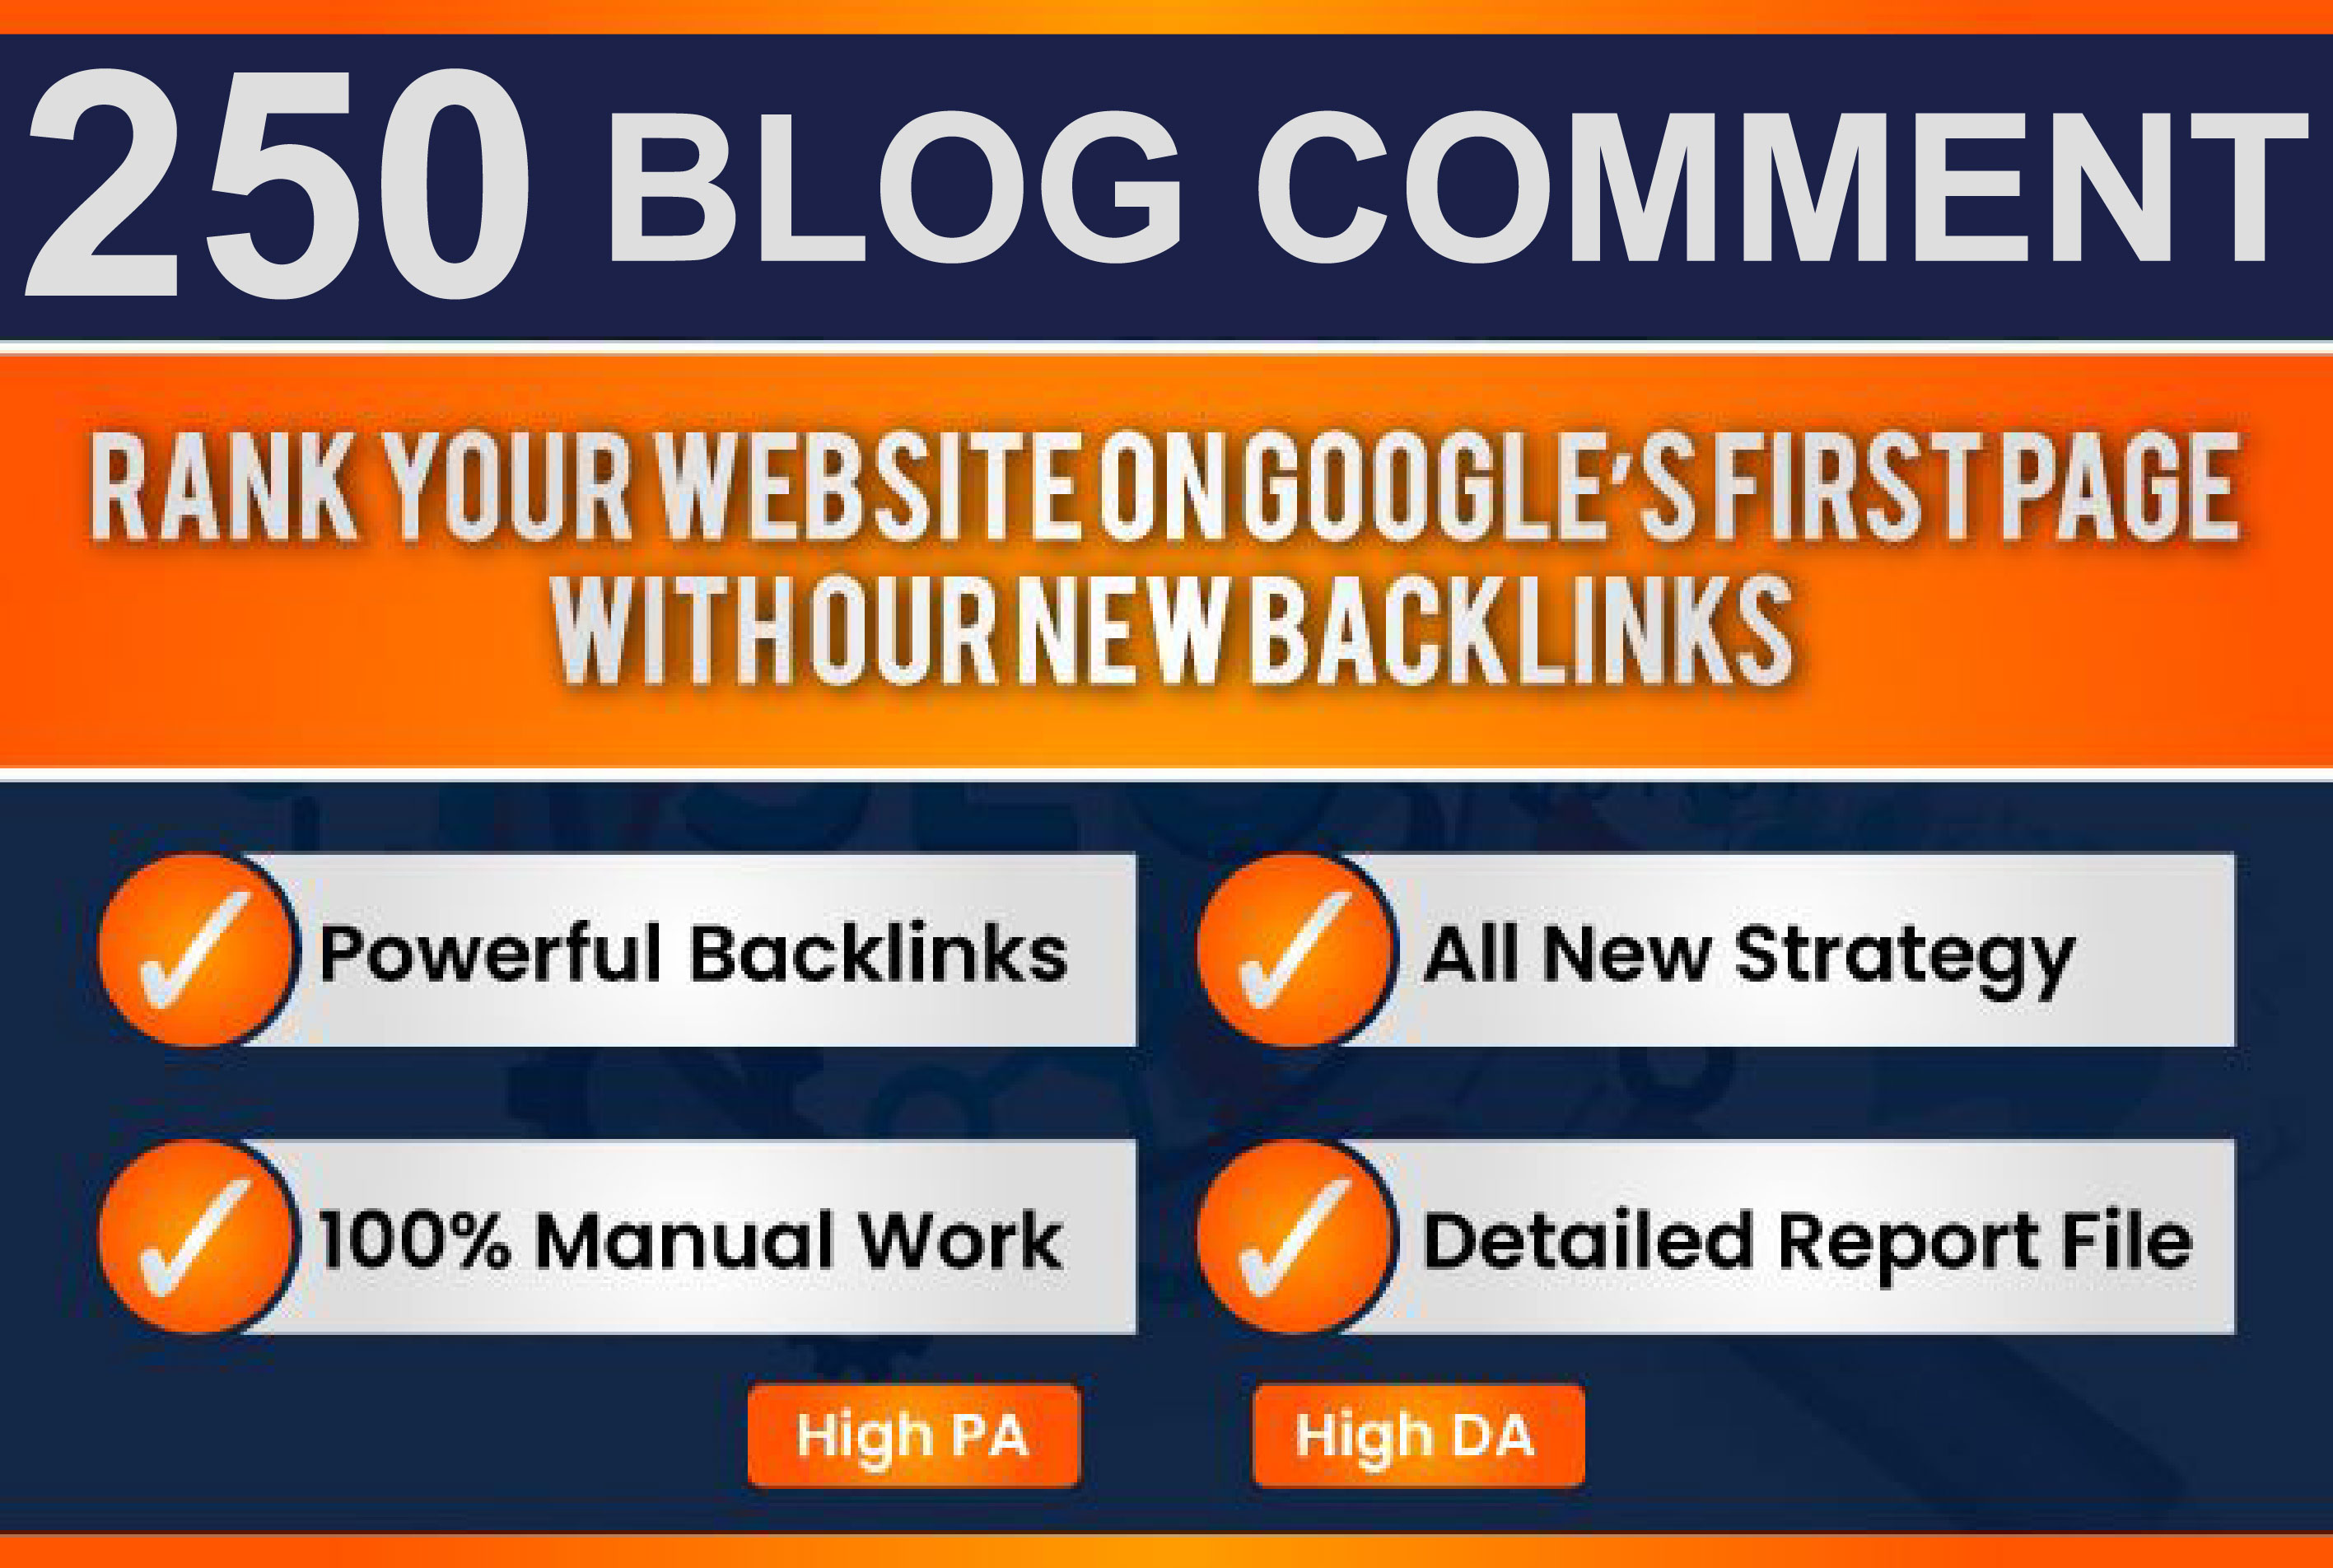 Build 250 Do-follow Blog Comments Backlinks on High DA PA Websites